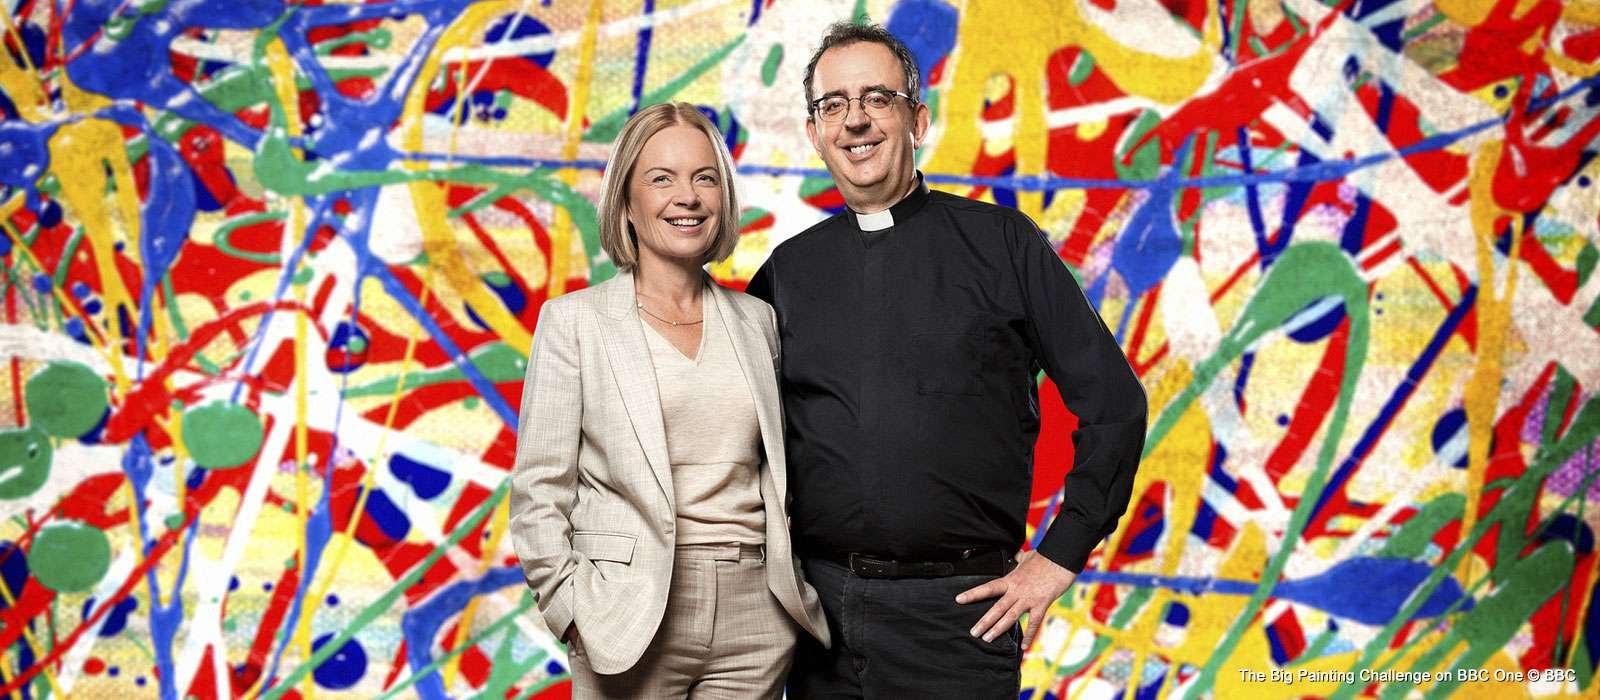 Richard Coles The Big Painting Challenge, BBC One